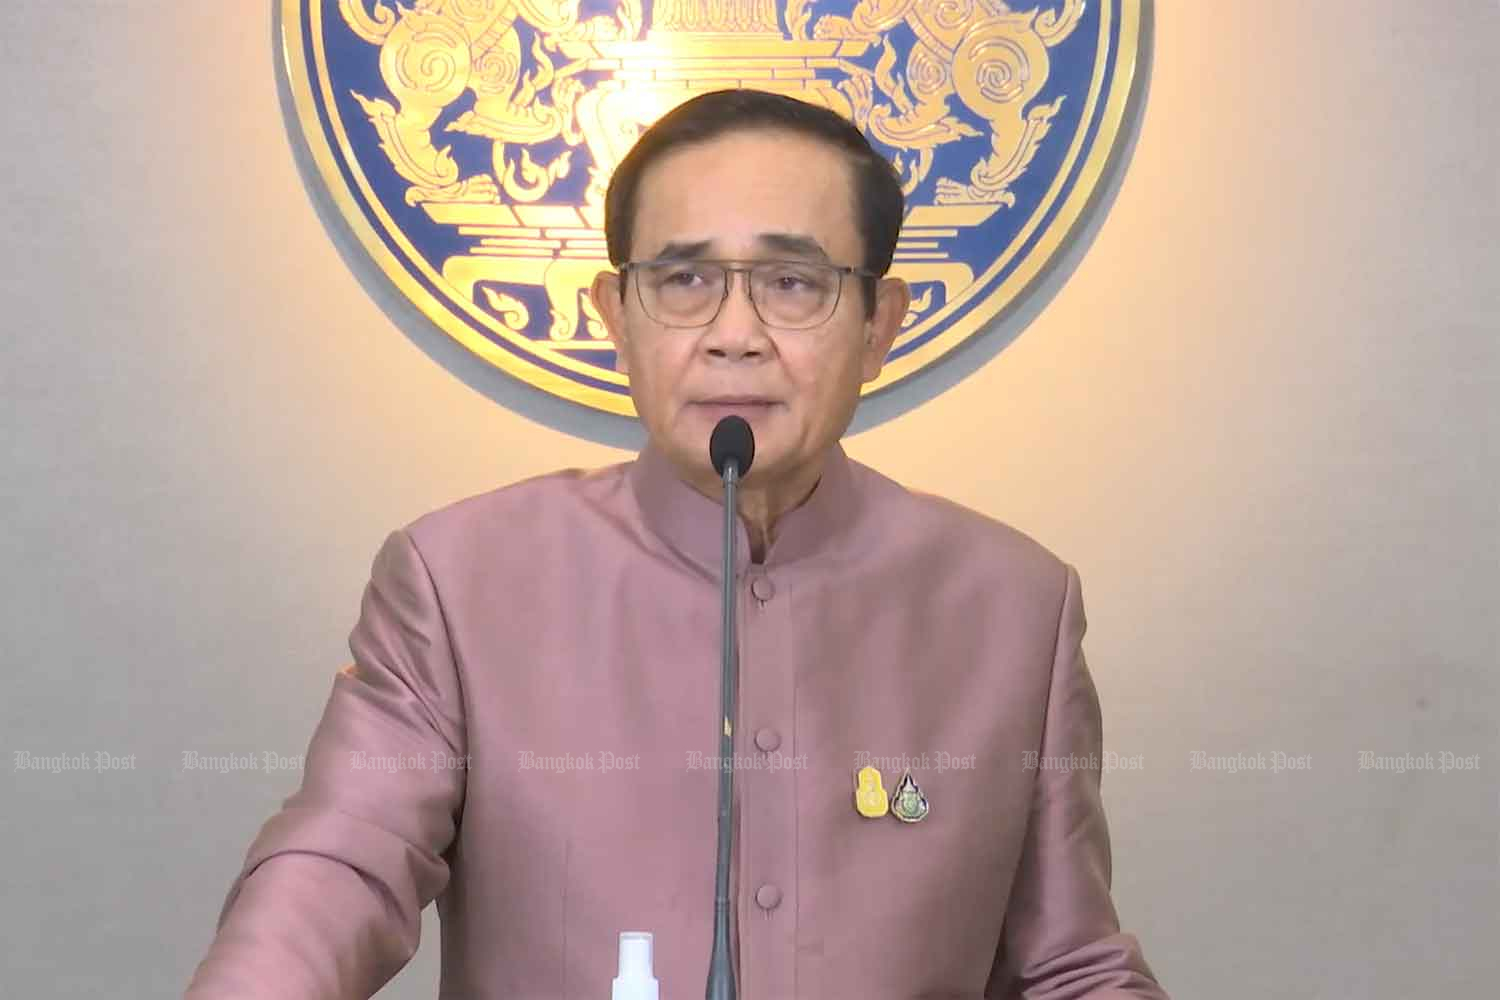 Prime Minister Prayut Chan-o-cha speaks to reporters after the cabinet's meeting at Government House on Tuesday. (Screenshot)